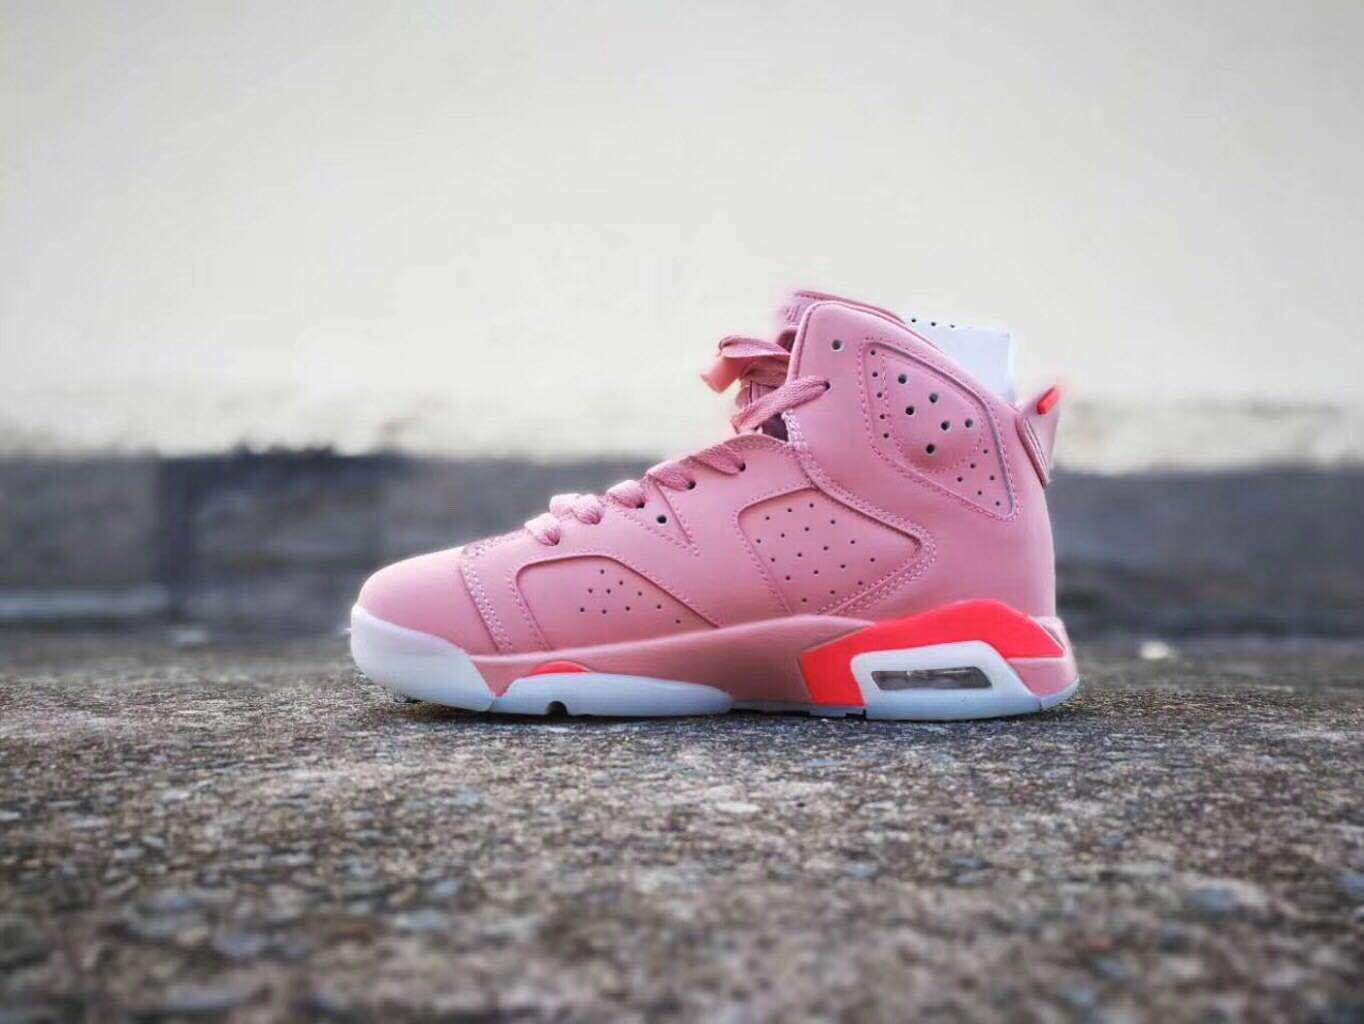 2019 Air Jordan 6 Women Pink White Shoes